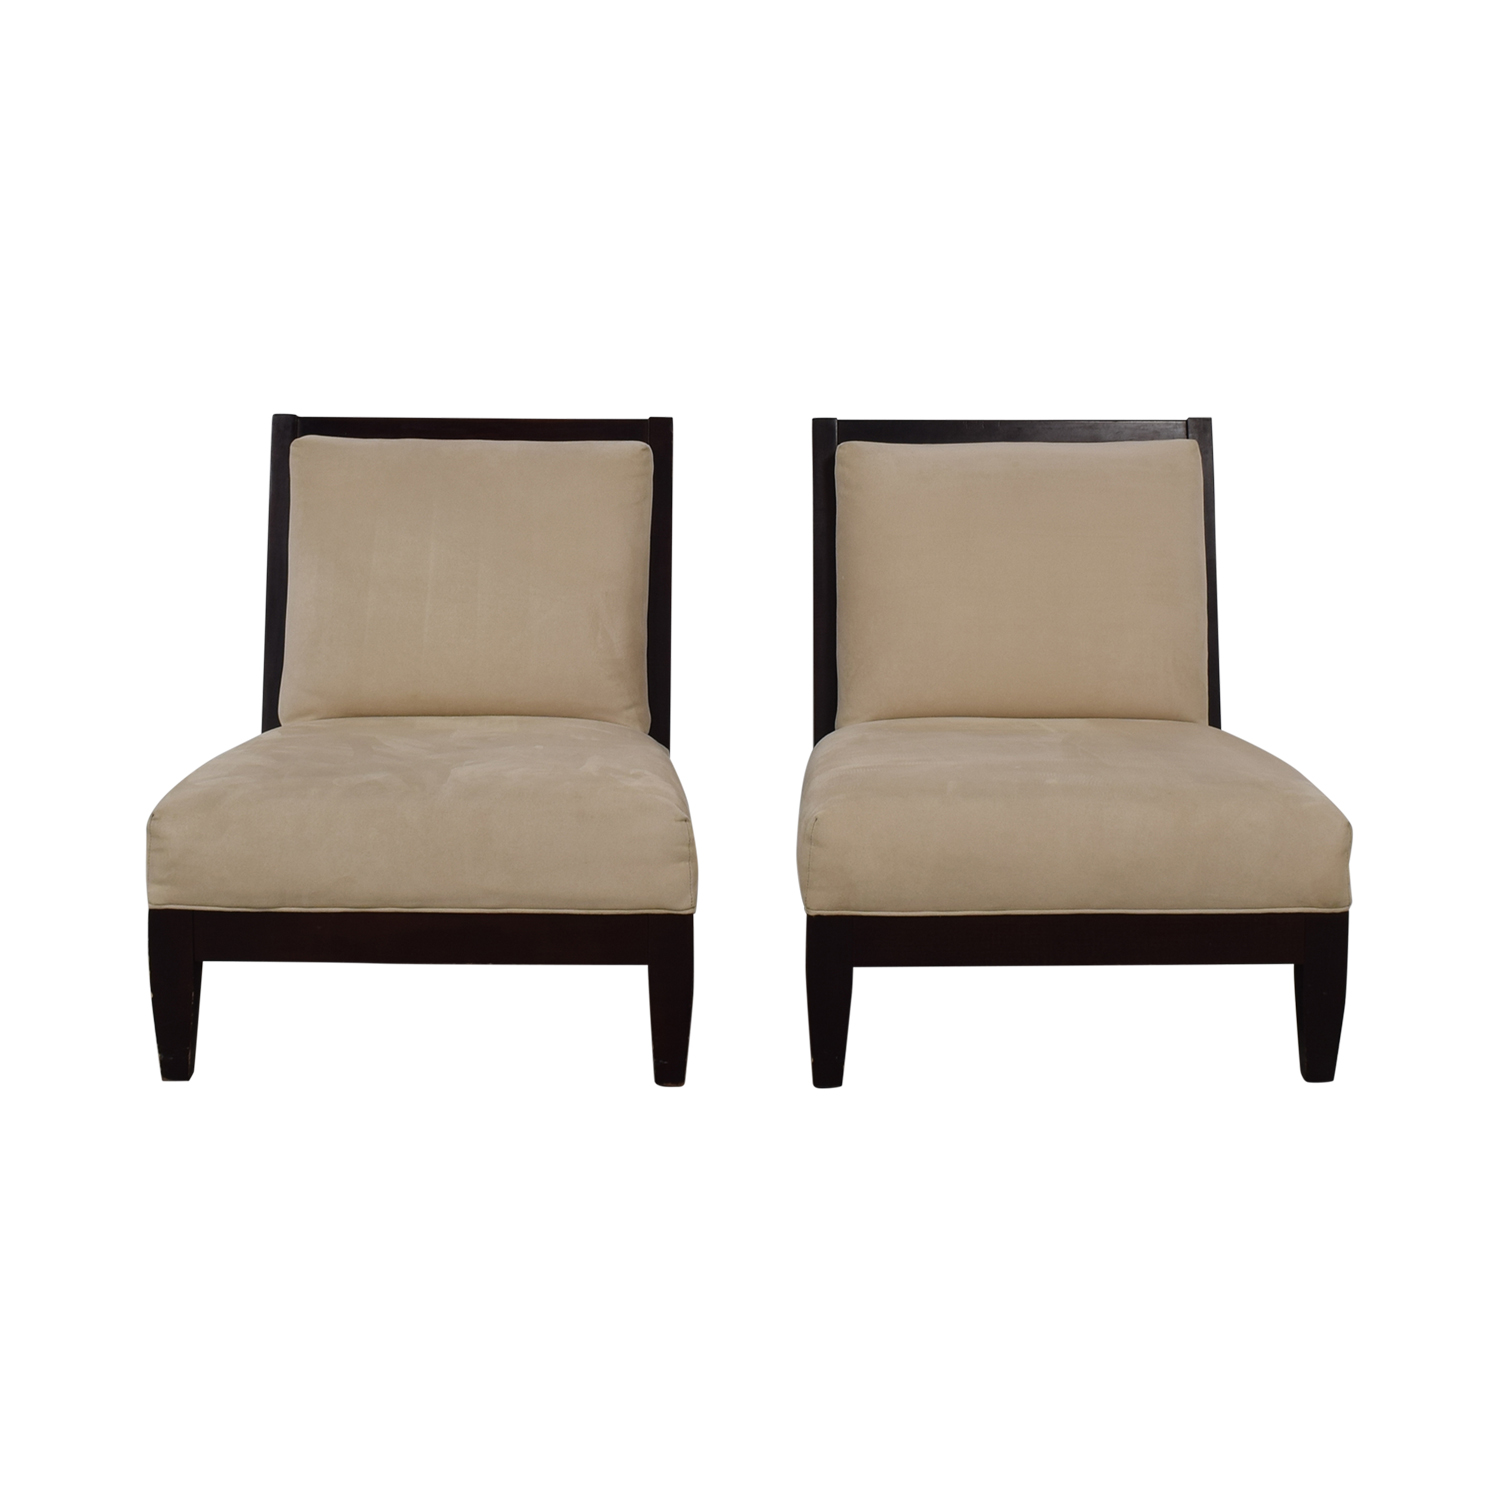 Room & Board Room & Board Beige and Black Accent Chairs nj